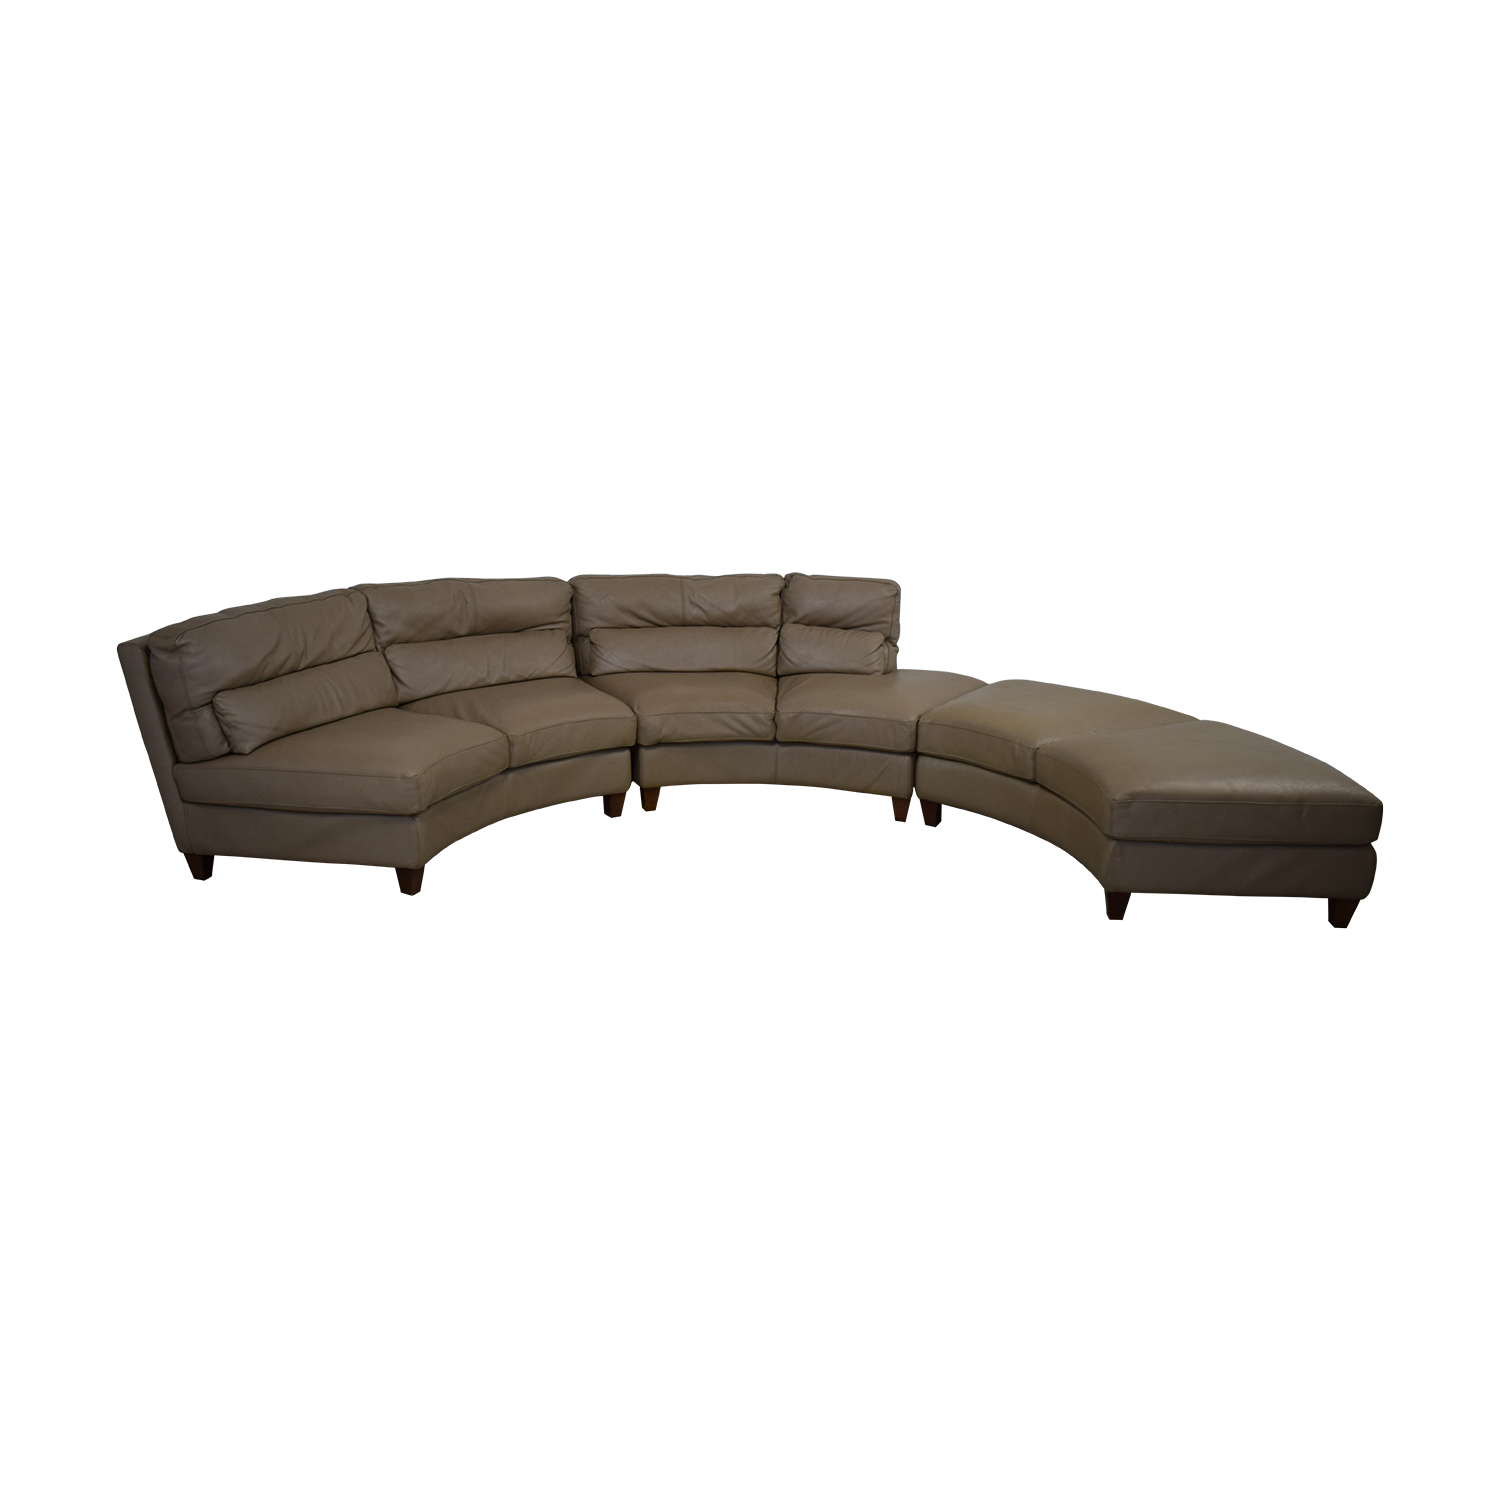 Chateau d'Ax Curved Sectional Sofa Chateau d'Ax